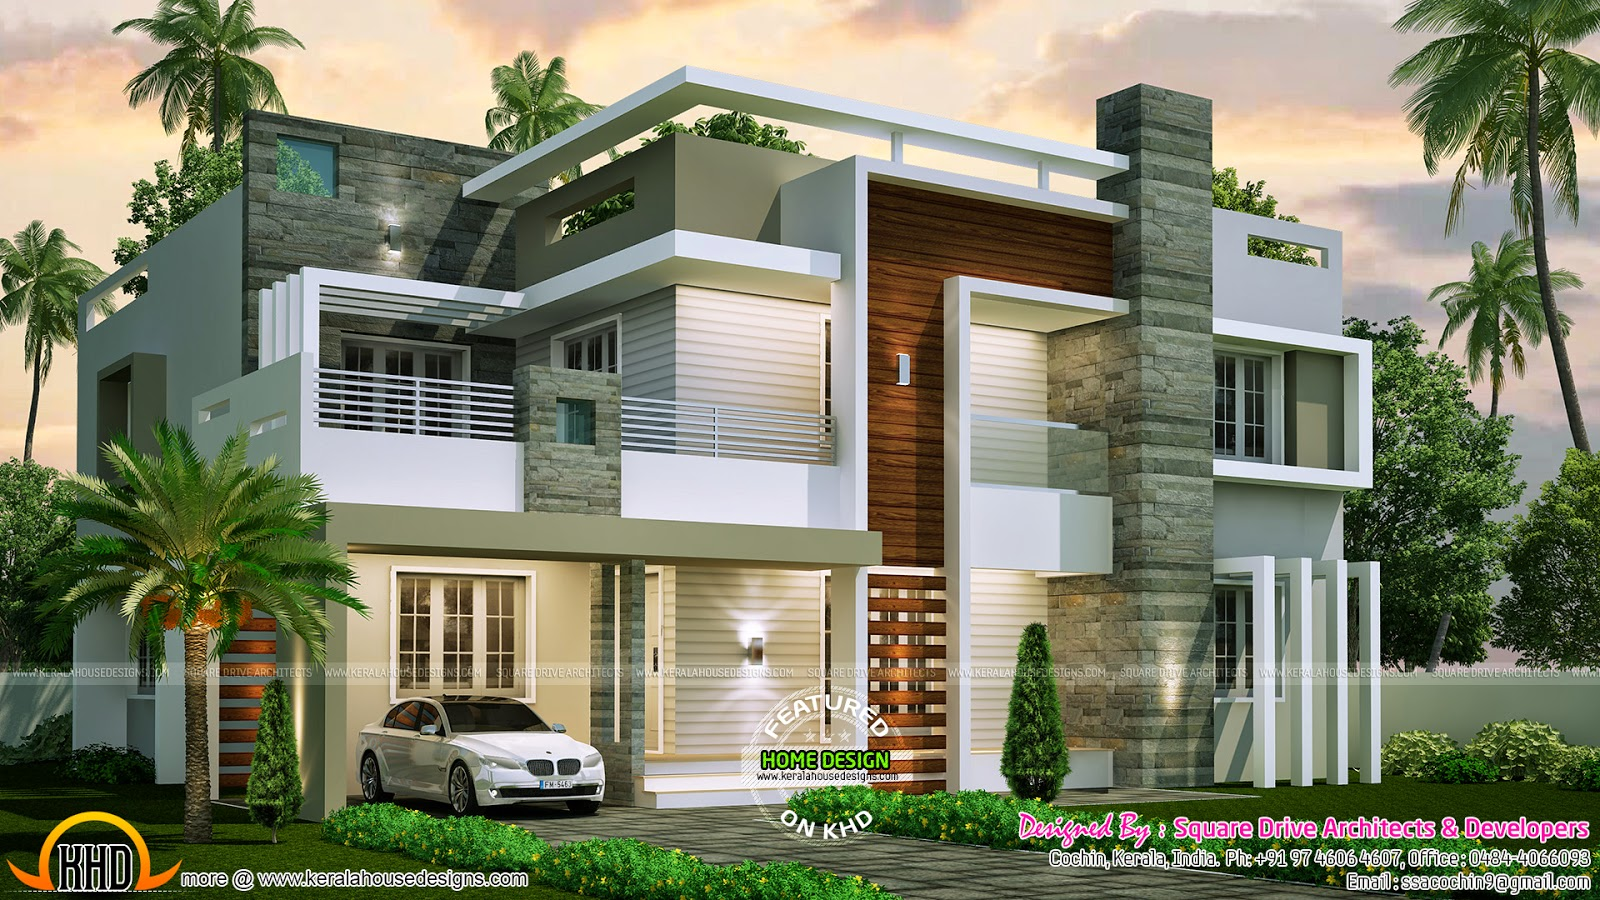 4 bedroom contemporary home design kerala home design for Modern house design 2016